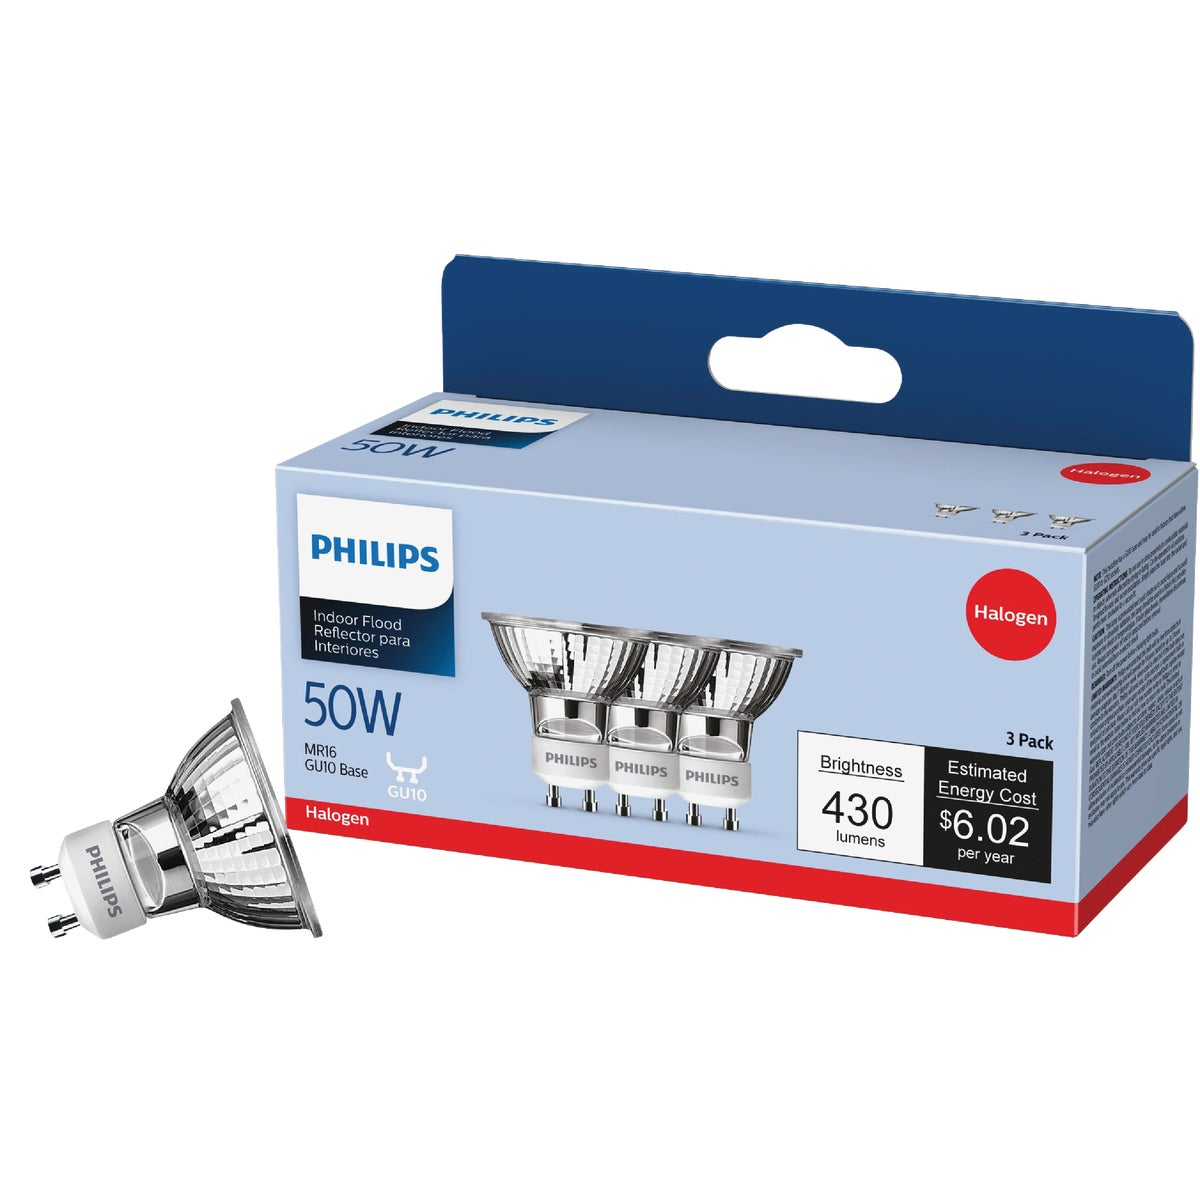 50W MR16 HAL FL 3PK BULB - 81662 Q50GU10/FL/CD3 by G E Lighting